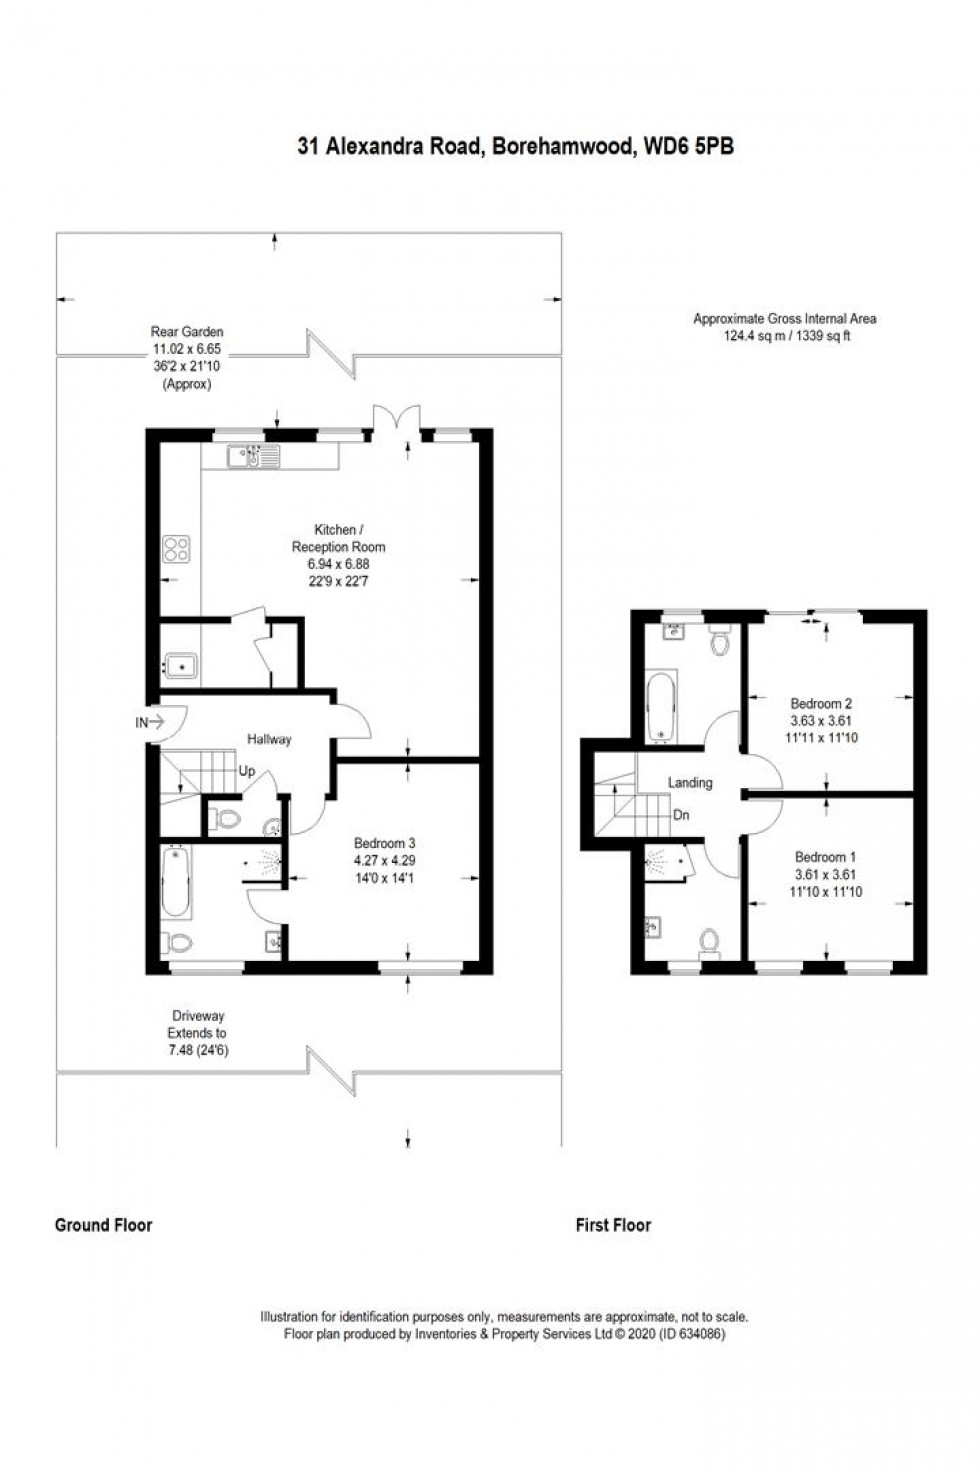 Floorplan for Alexandra Road, Borehamwood